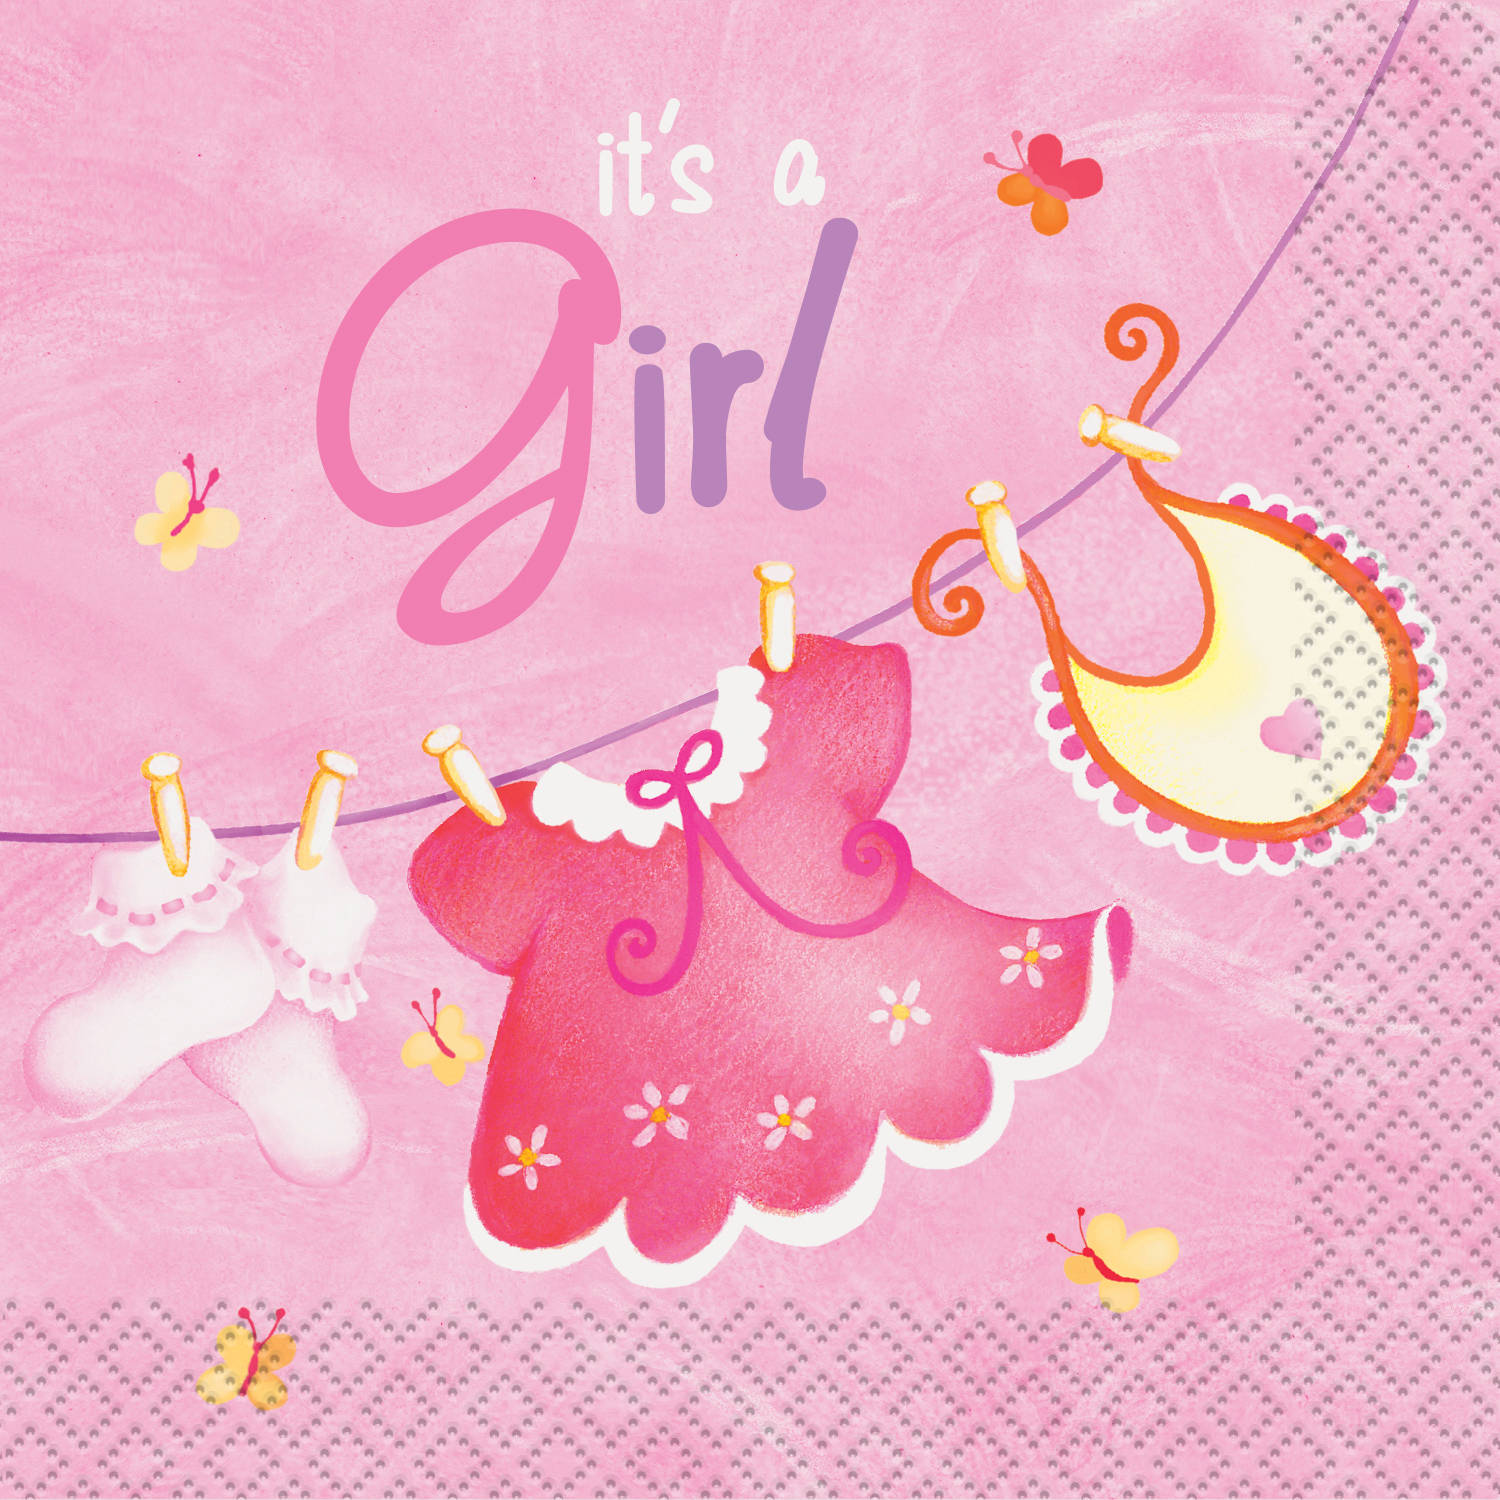 Clothesline Baby Shower Cocktail Napkins, 5 in, Pink, 16ct by Unique Industries